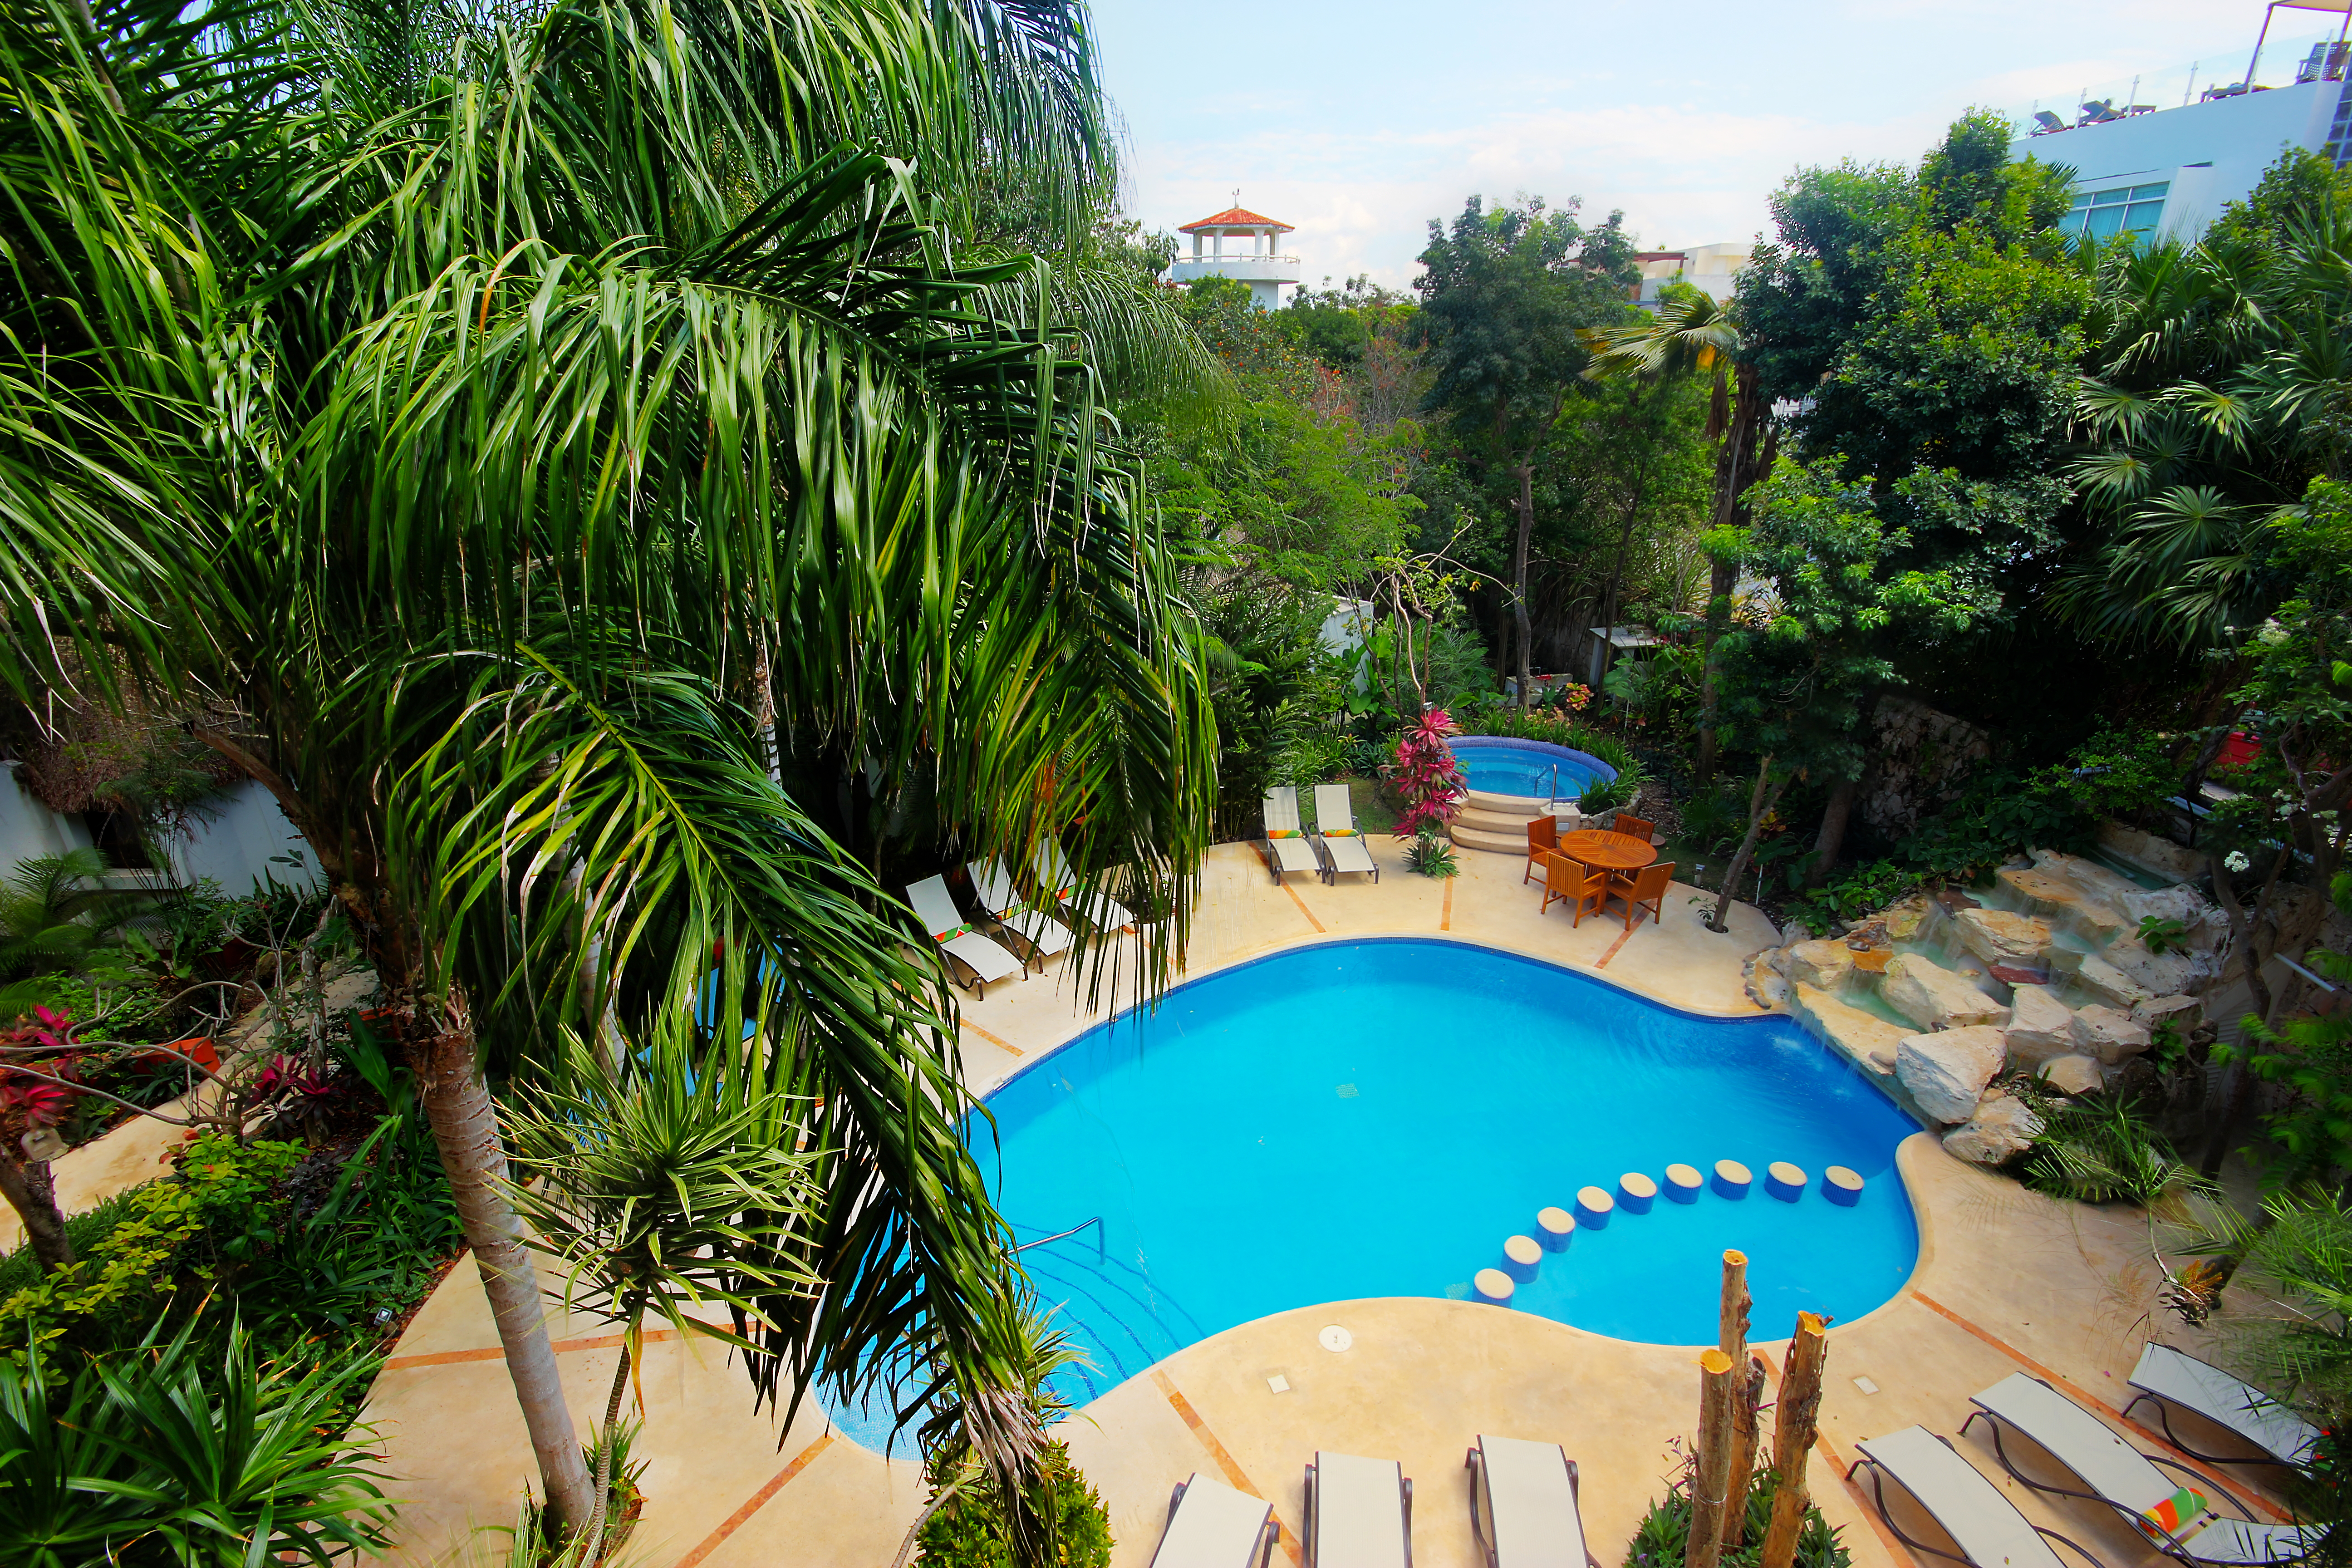 An incomparable private oasis! / un Oasis Privado incomparable!